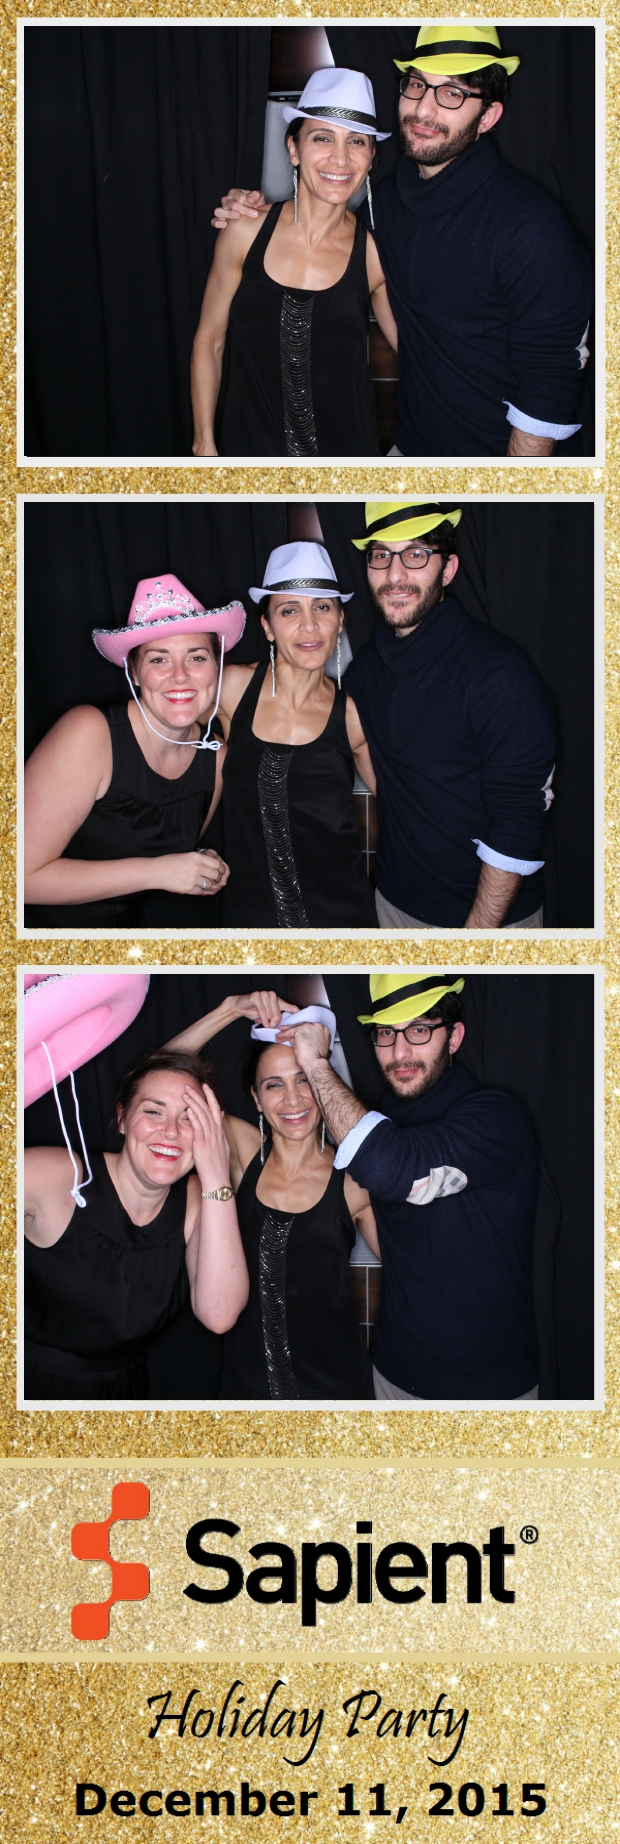 Guest House Events Photo Booth Sapient Holiday Party (88).jpg